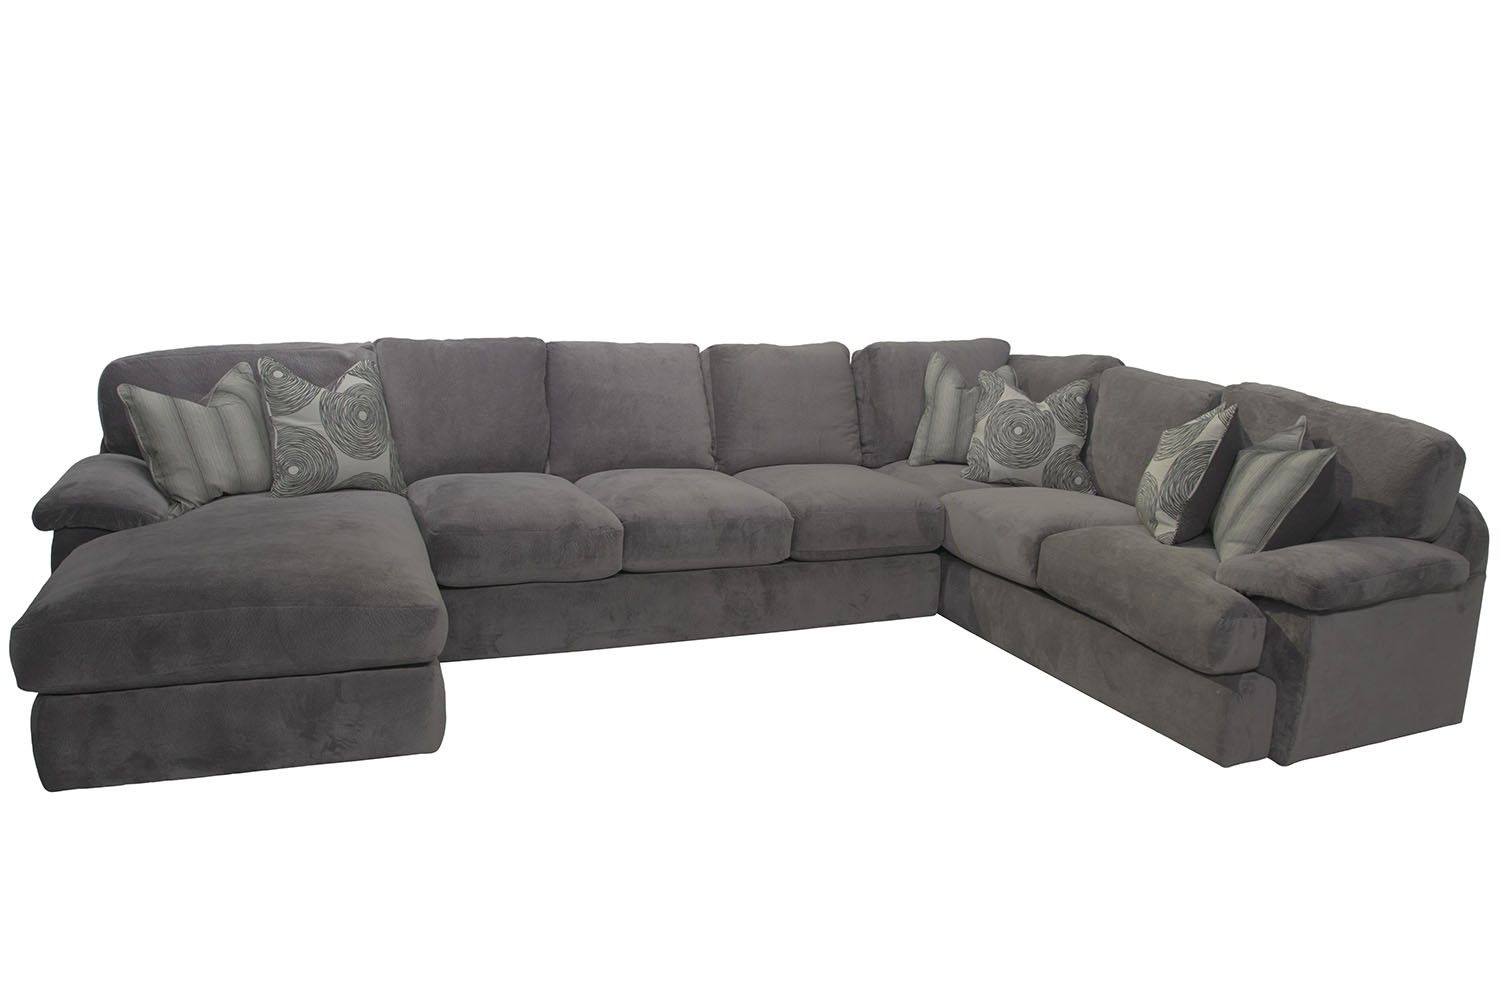 Mor Furniture For Less: Key West Right Facing Sofa Tux Sectional In Gray |